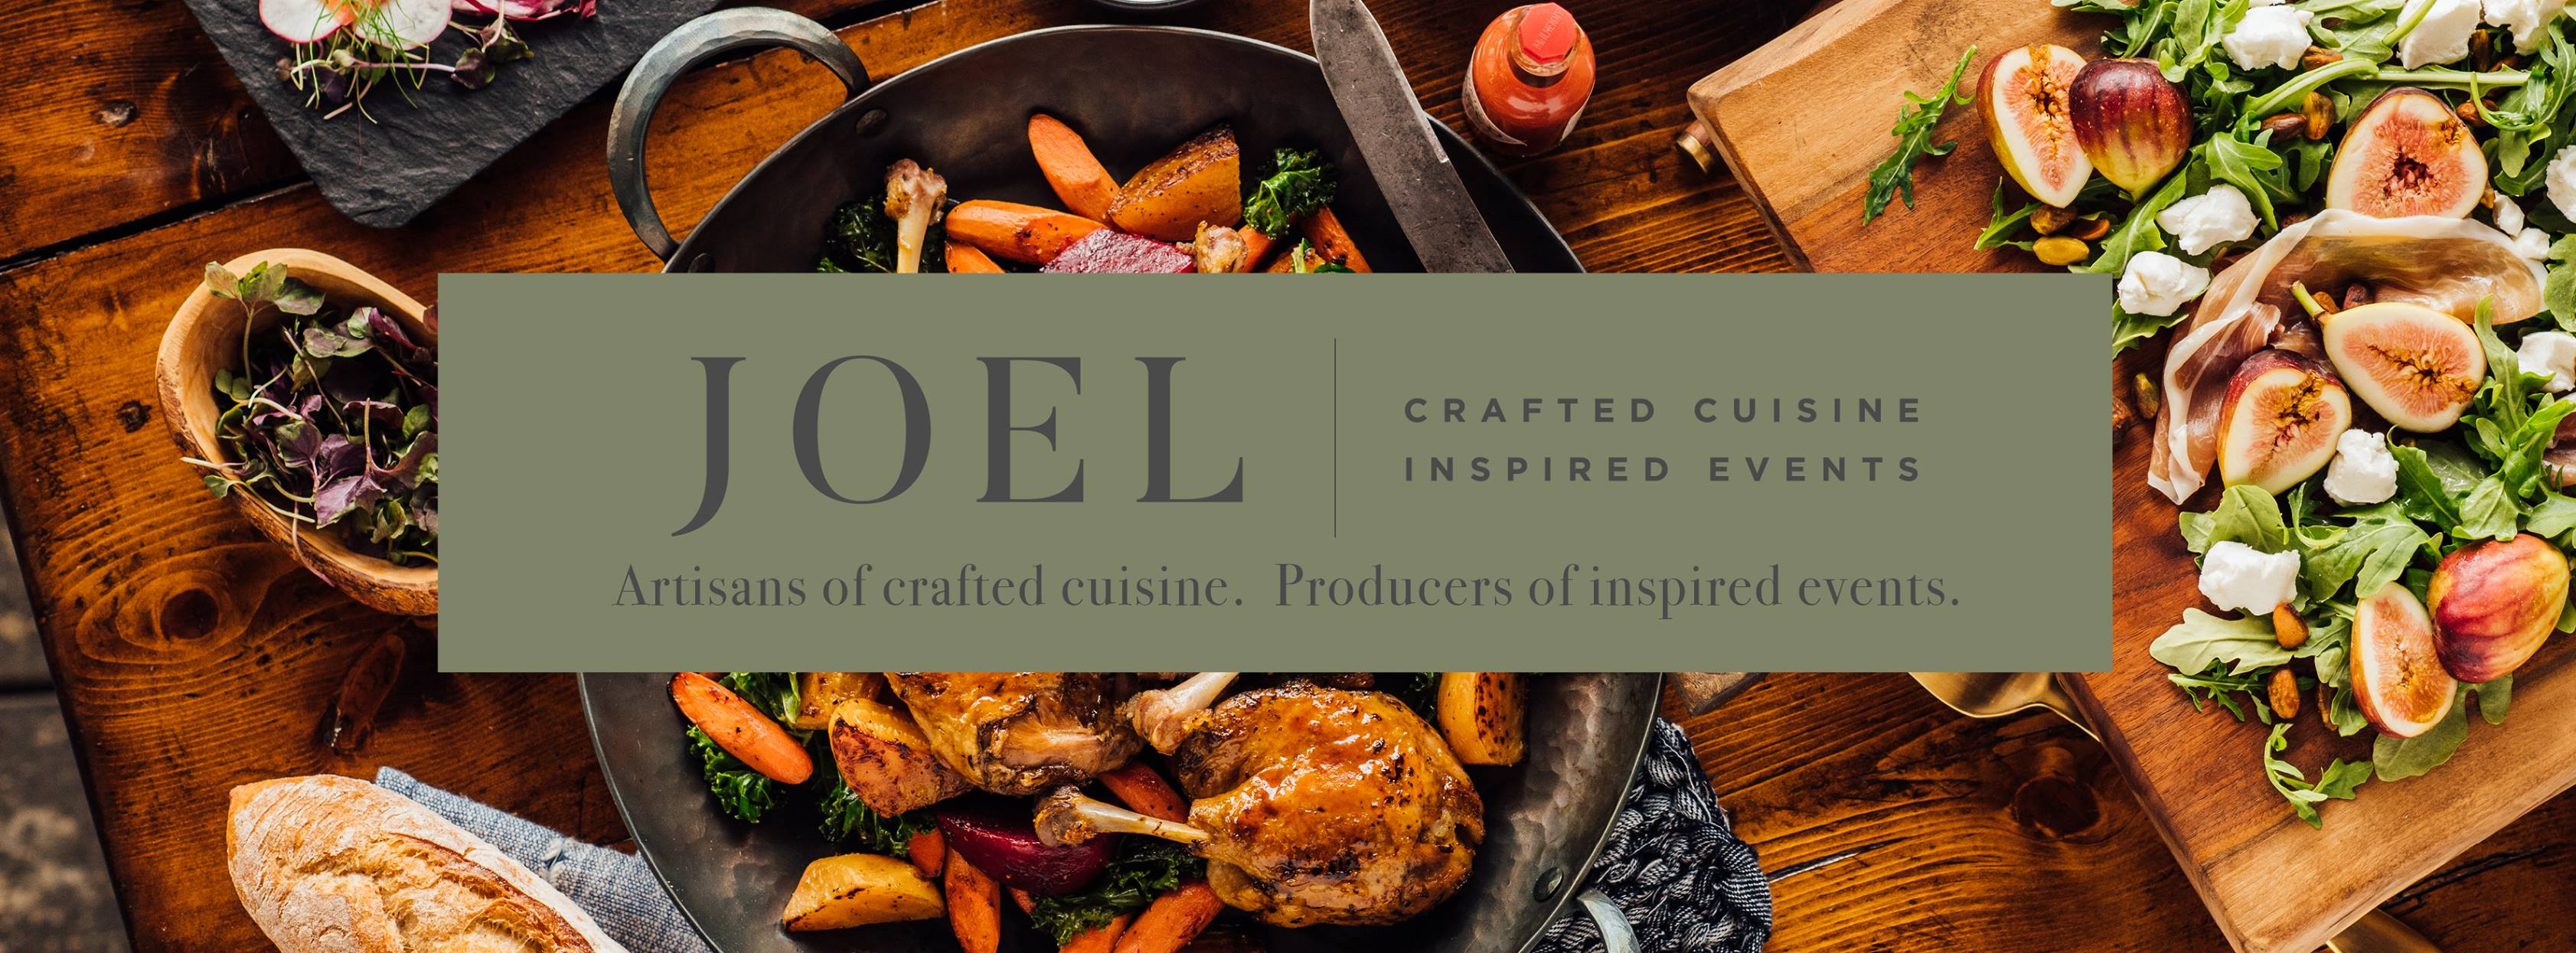 Joel Catering and Special Events - New Orleans, LA 70130 - (504)827-2400 | ShowMeLocal.com